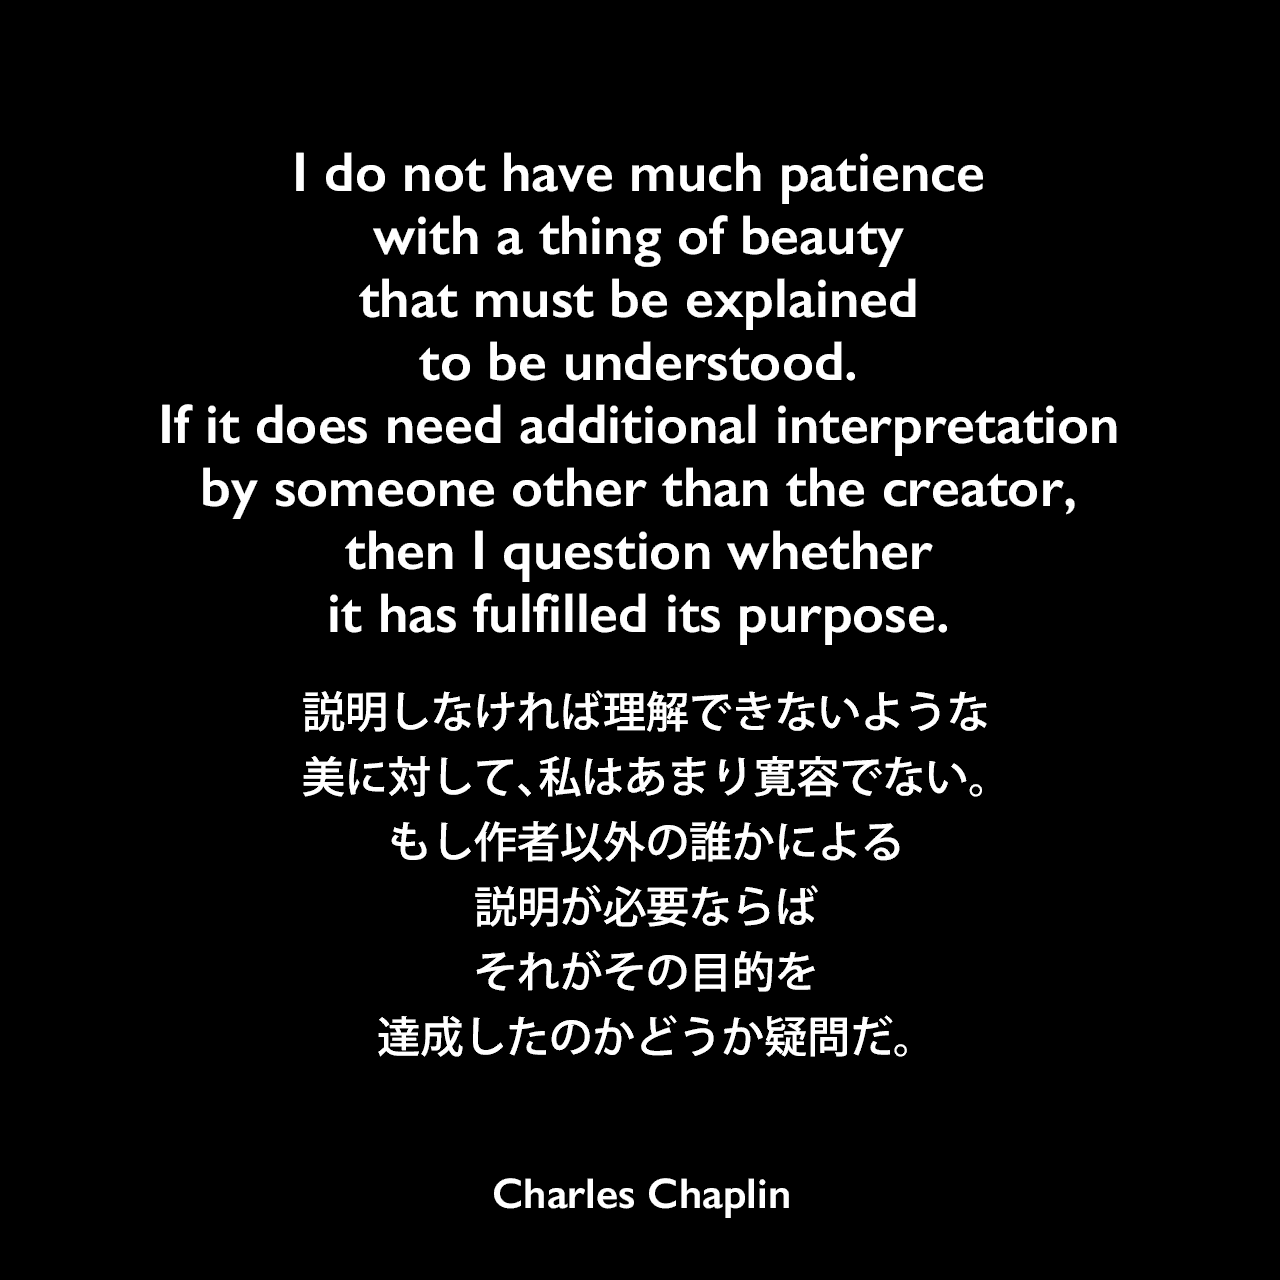 I do not have much patience with a thing of beauty that must be explained to be understood. If it does need additional interpretation by someone other than the creator, then I question whether it has fulfilled its purpose.説明しなければ理解できないような美に対して、私はあまり寛容でない。もし作者以外の誰かによる説明が必要ならば、それがその目的を達成したのかどうか疑問だ。Charles Chaplin